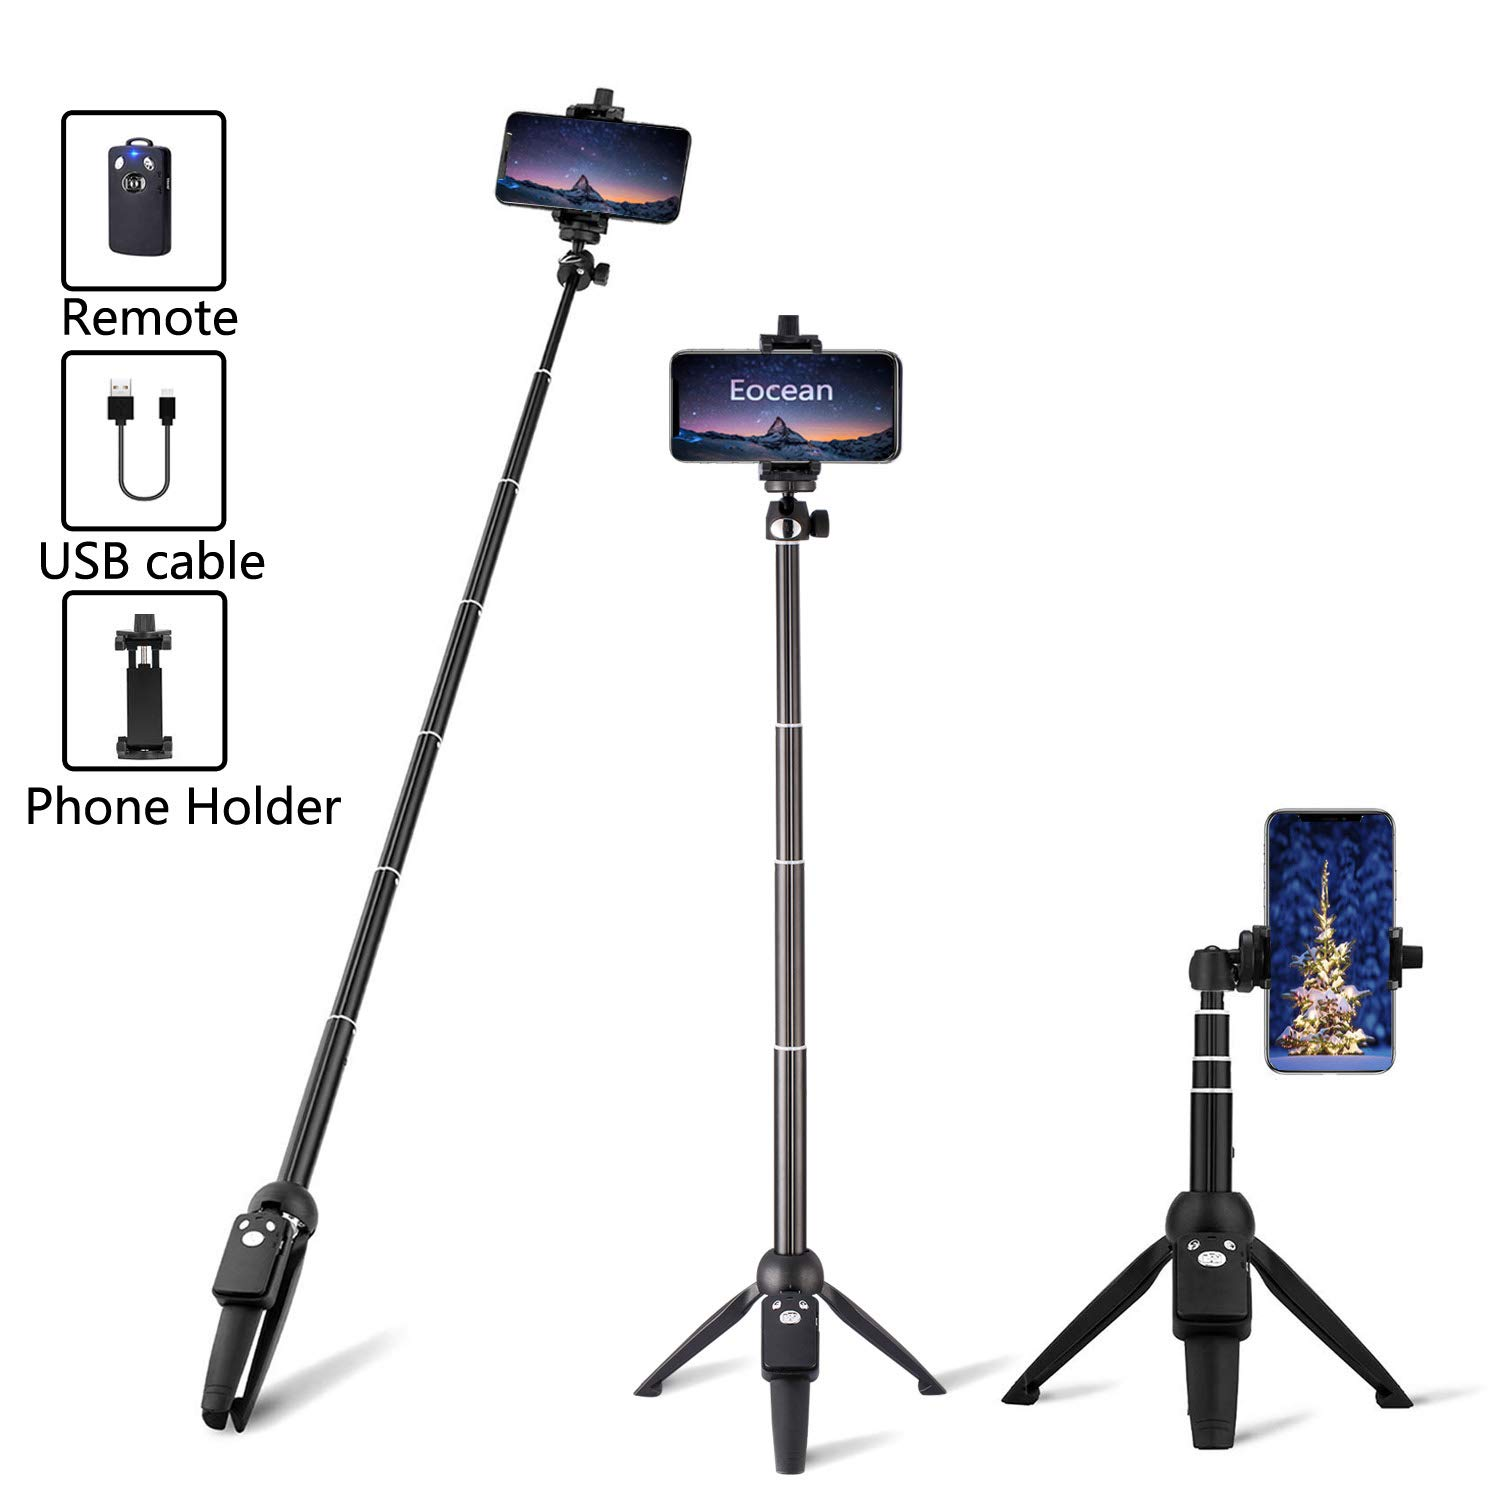 Eocean 40-inch Selfie Stick Tripod, Extendable Selfie Stick Tripod Stand with Wireless Remote, Compatible with iPhone Xs/Xr/Xs Max/X/8/8 Plus/Samsung Galaxy Note 9/S9/Huawei/Honor/Google and More by Eocean